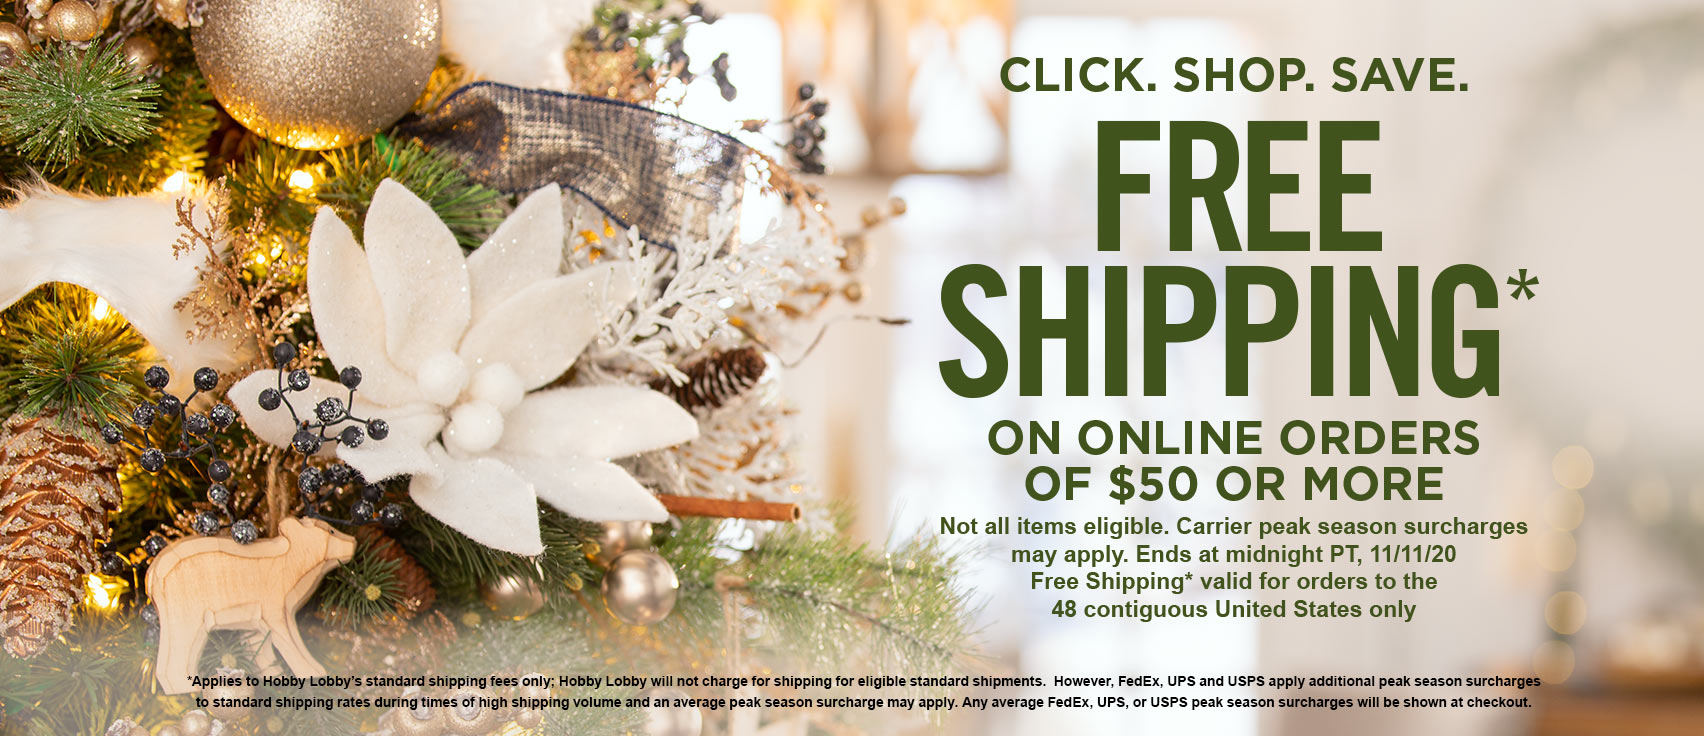 Free Shipping on Orders of  or More Online Orders at Hobby Lobby!